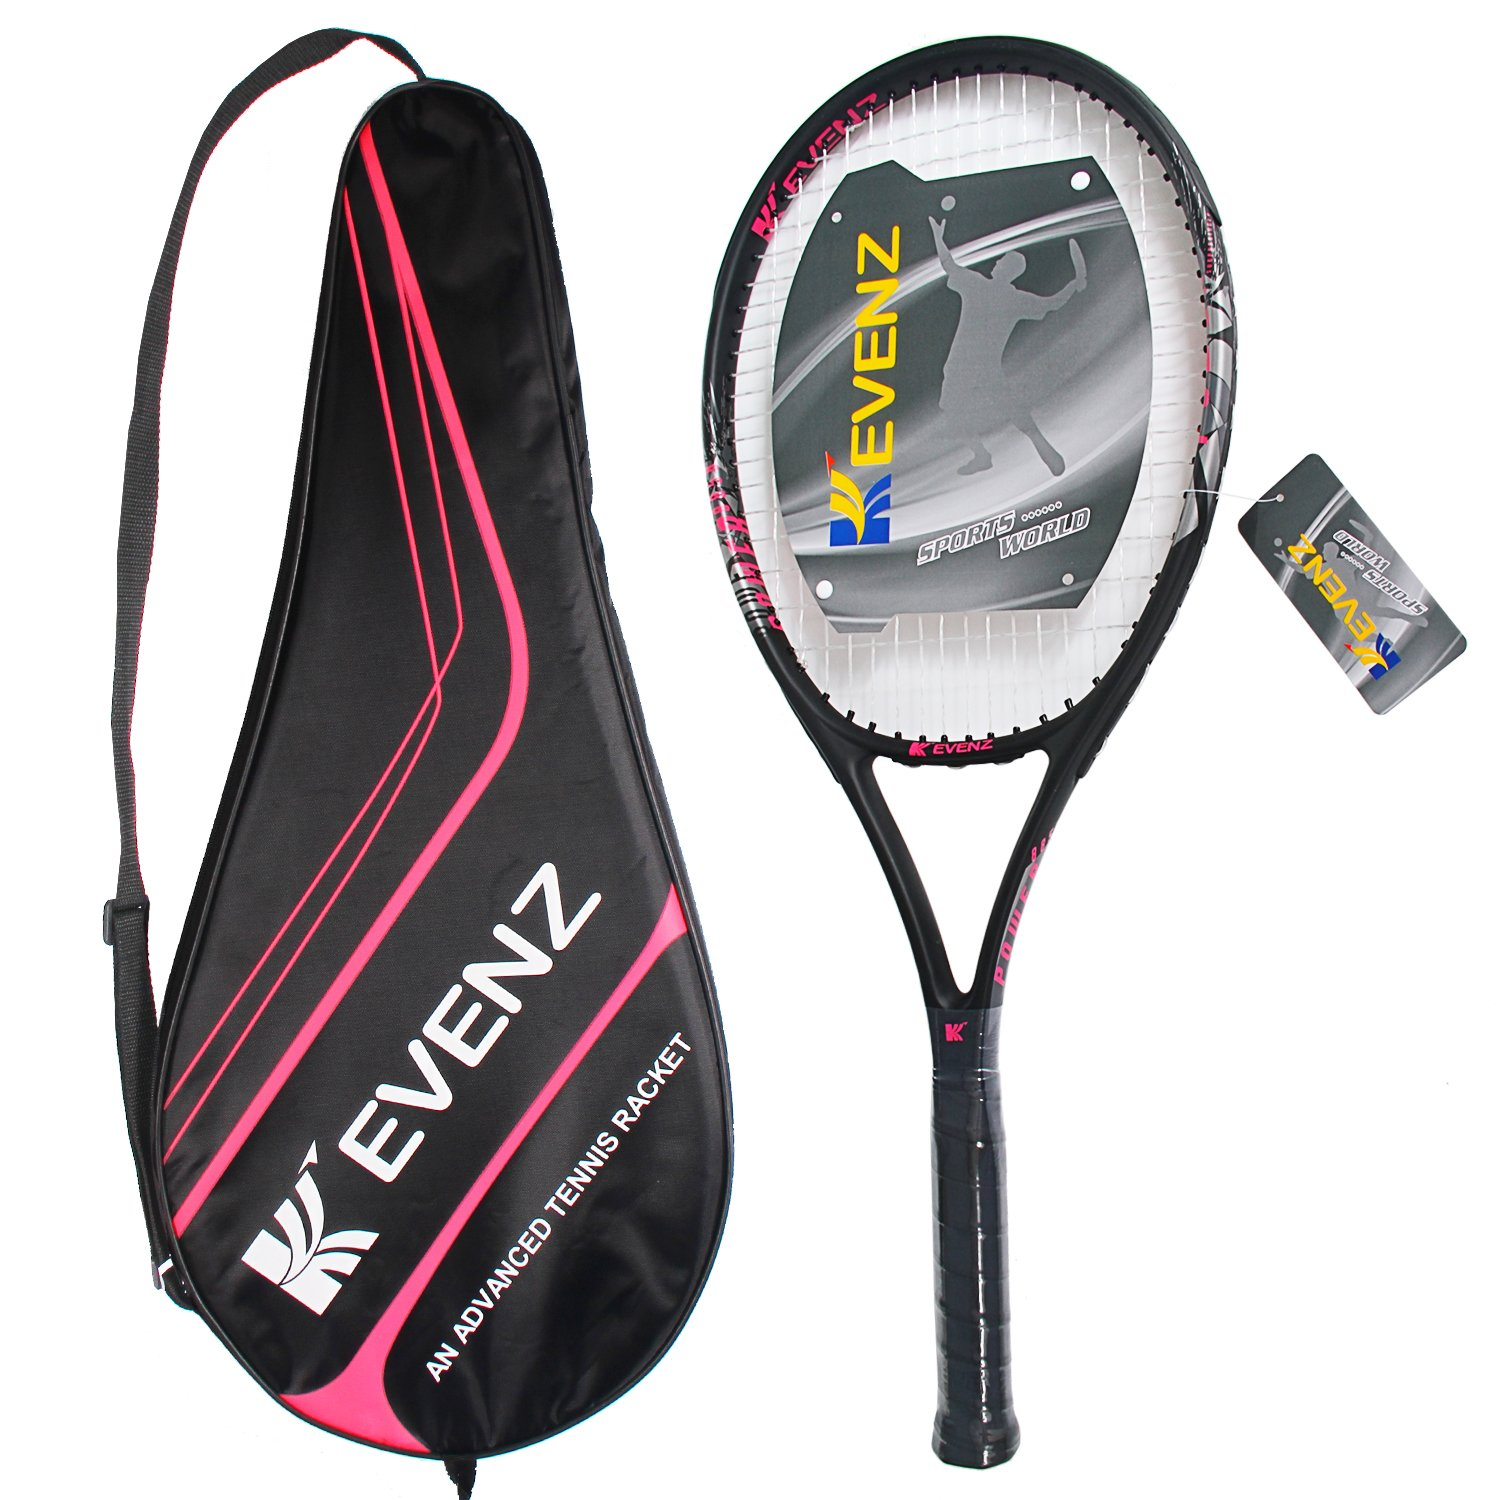 KEVENZ Green Advanced Training Tennis Balls,Practice Ball,Tennis Racket (Black Racket) by KEVENZ (Image #3)